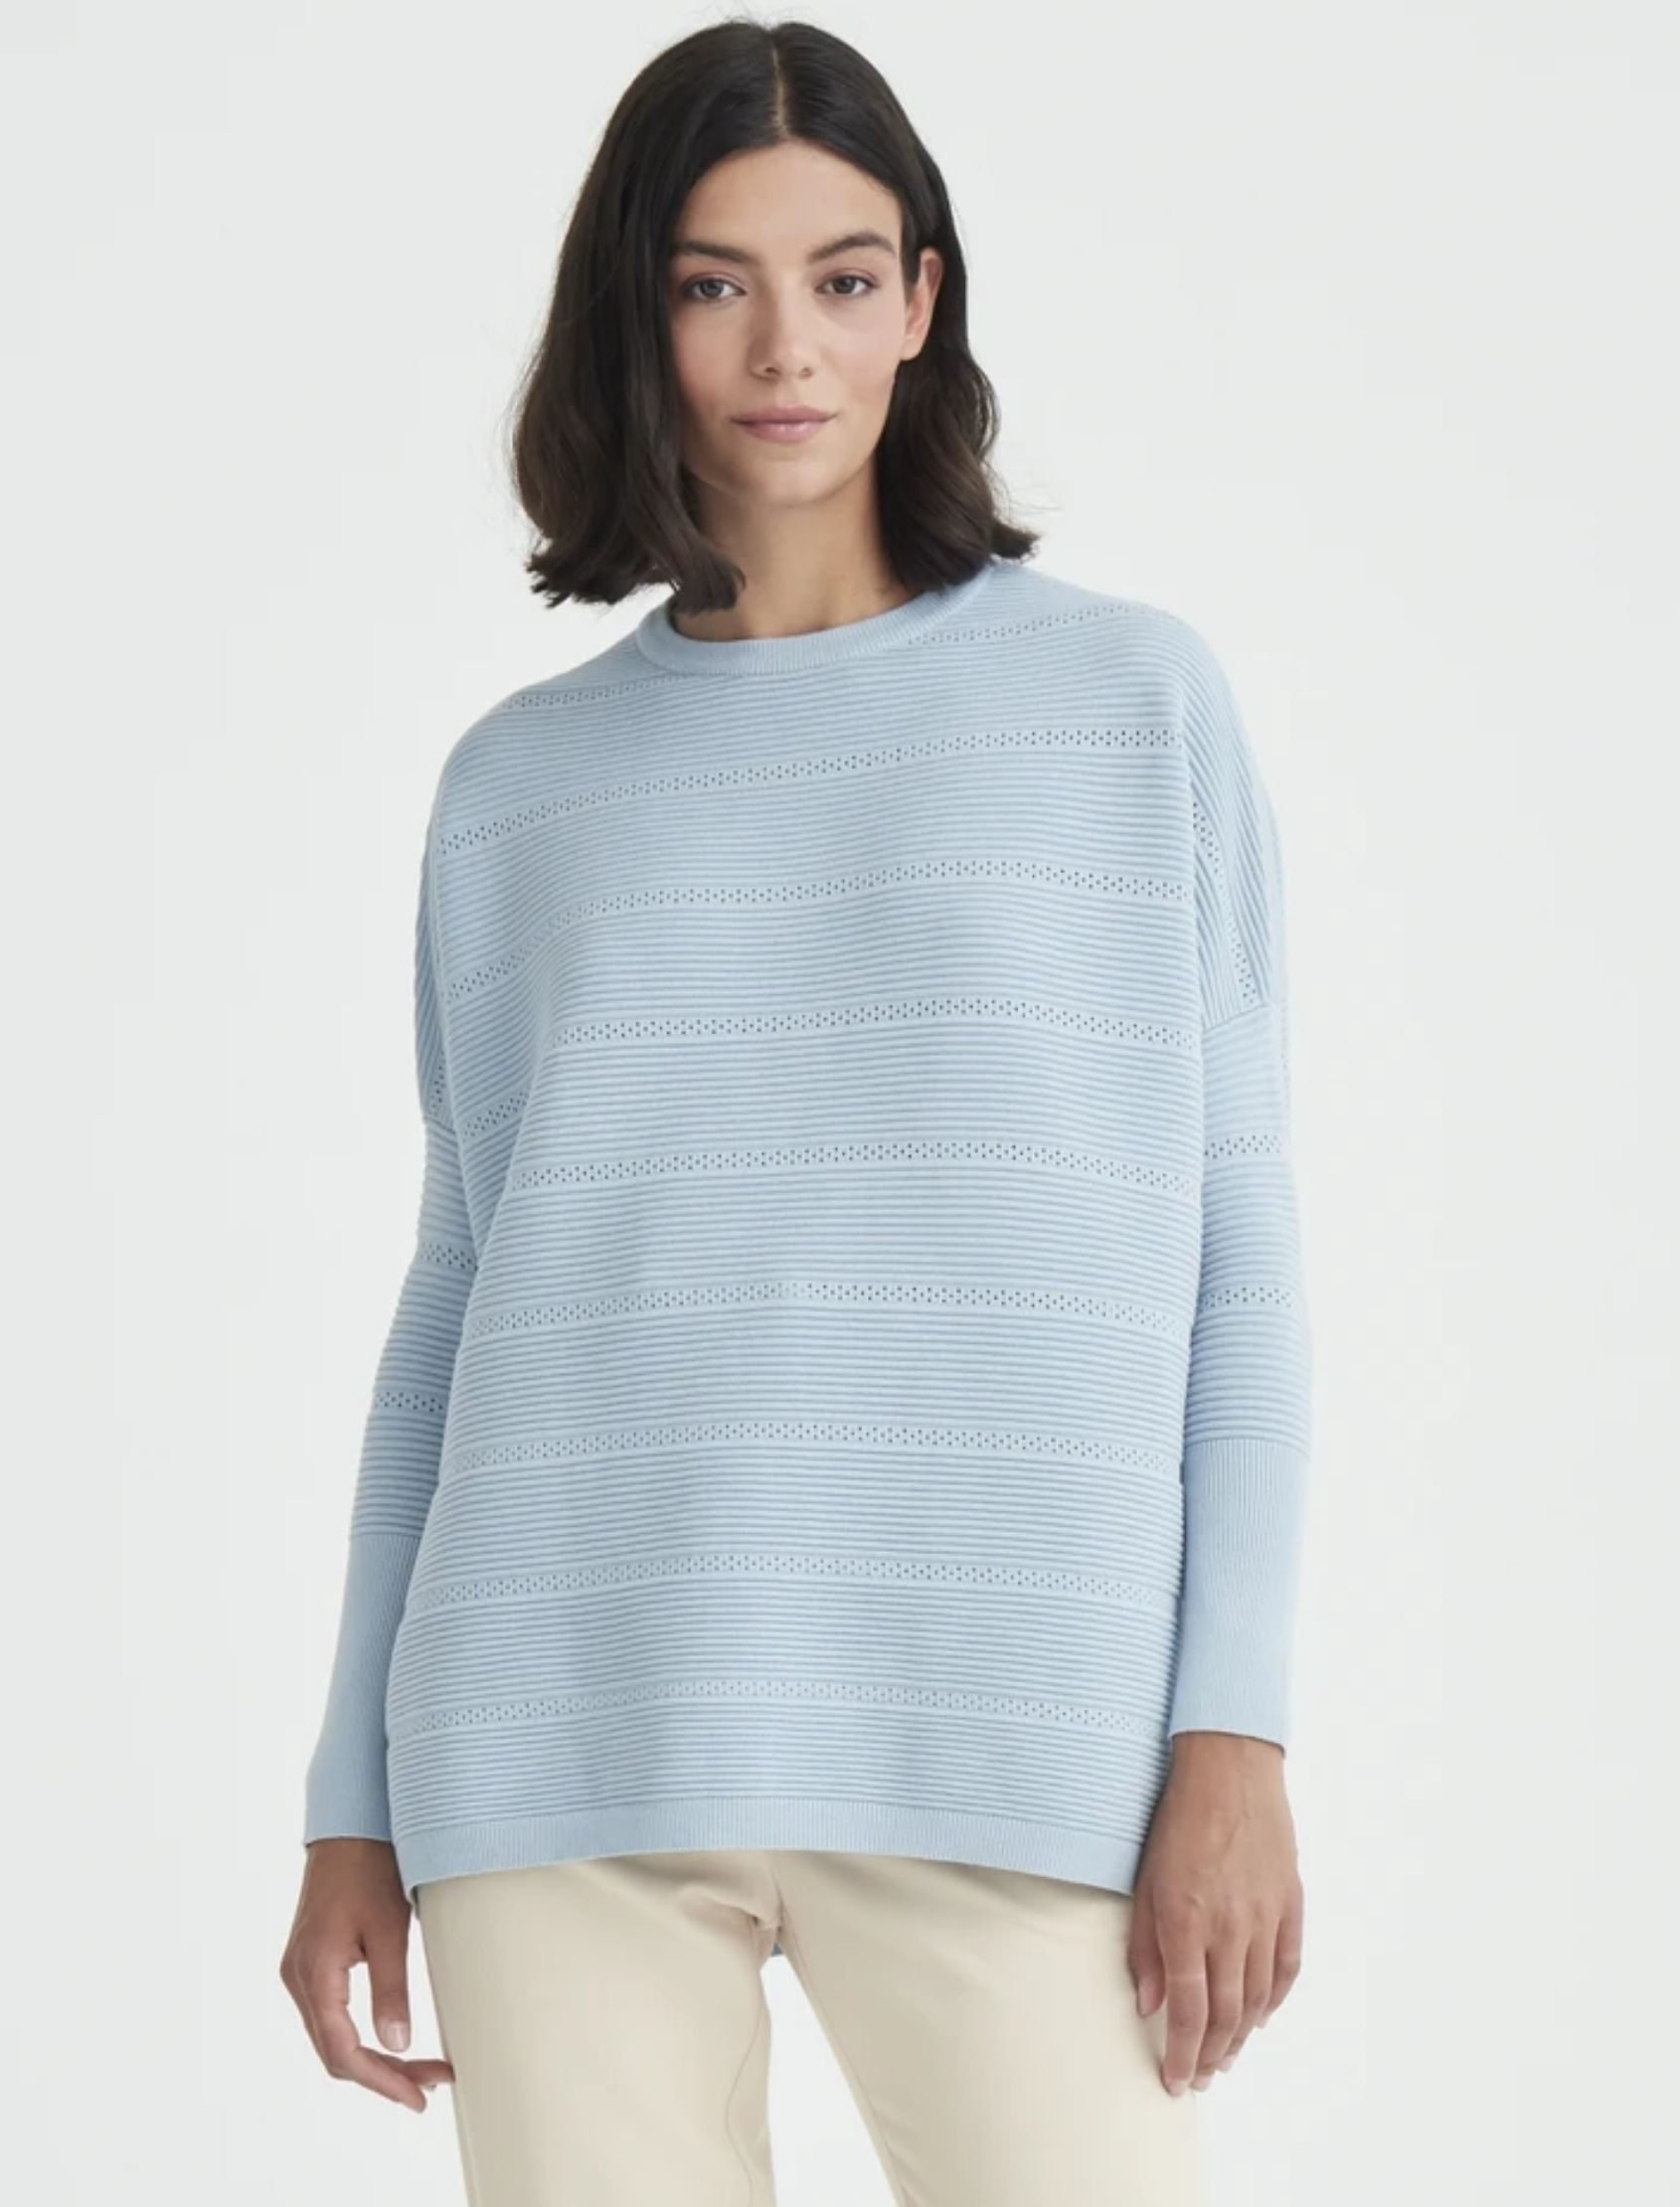 JErsei jumper de punto en color azul de la marca paisie london